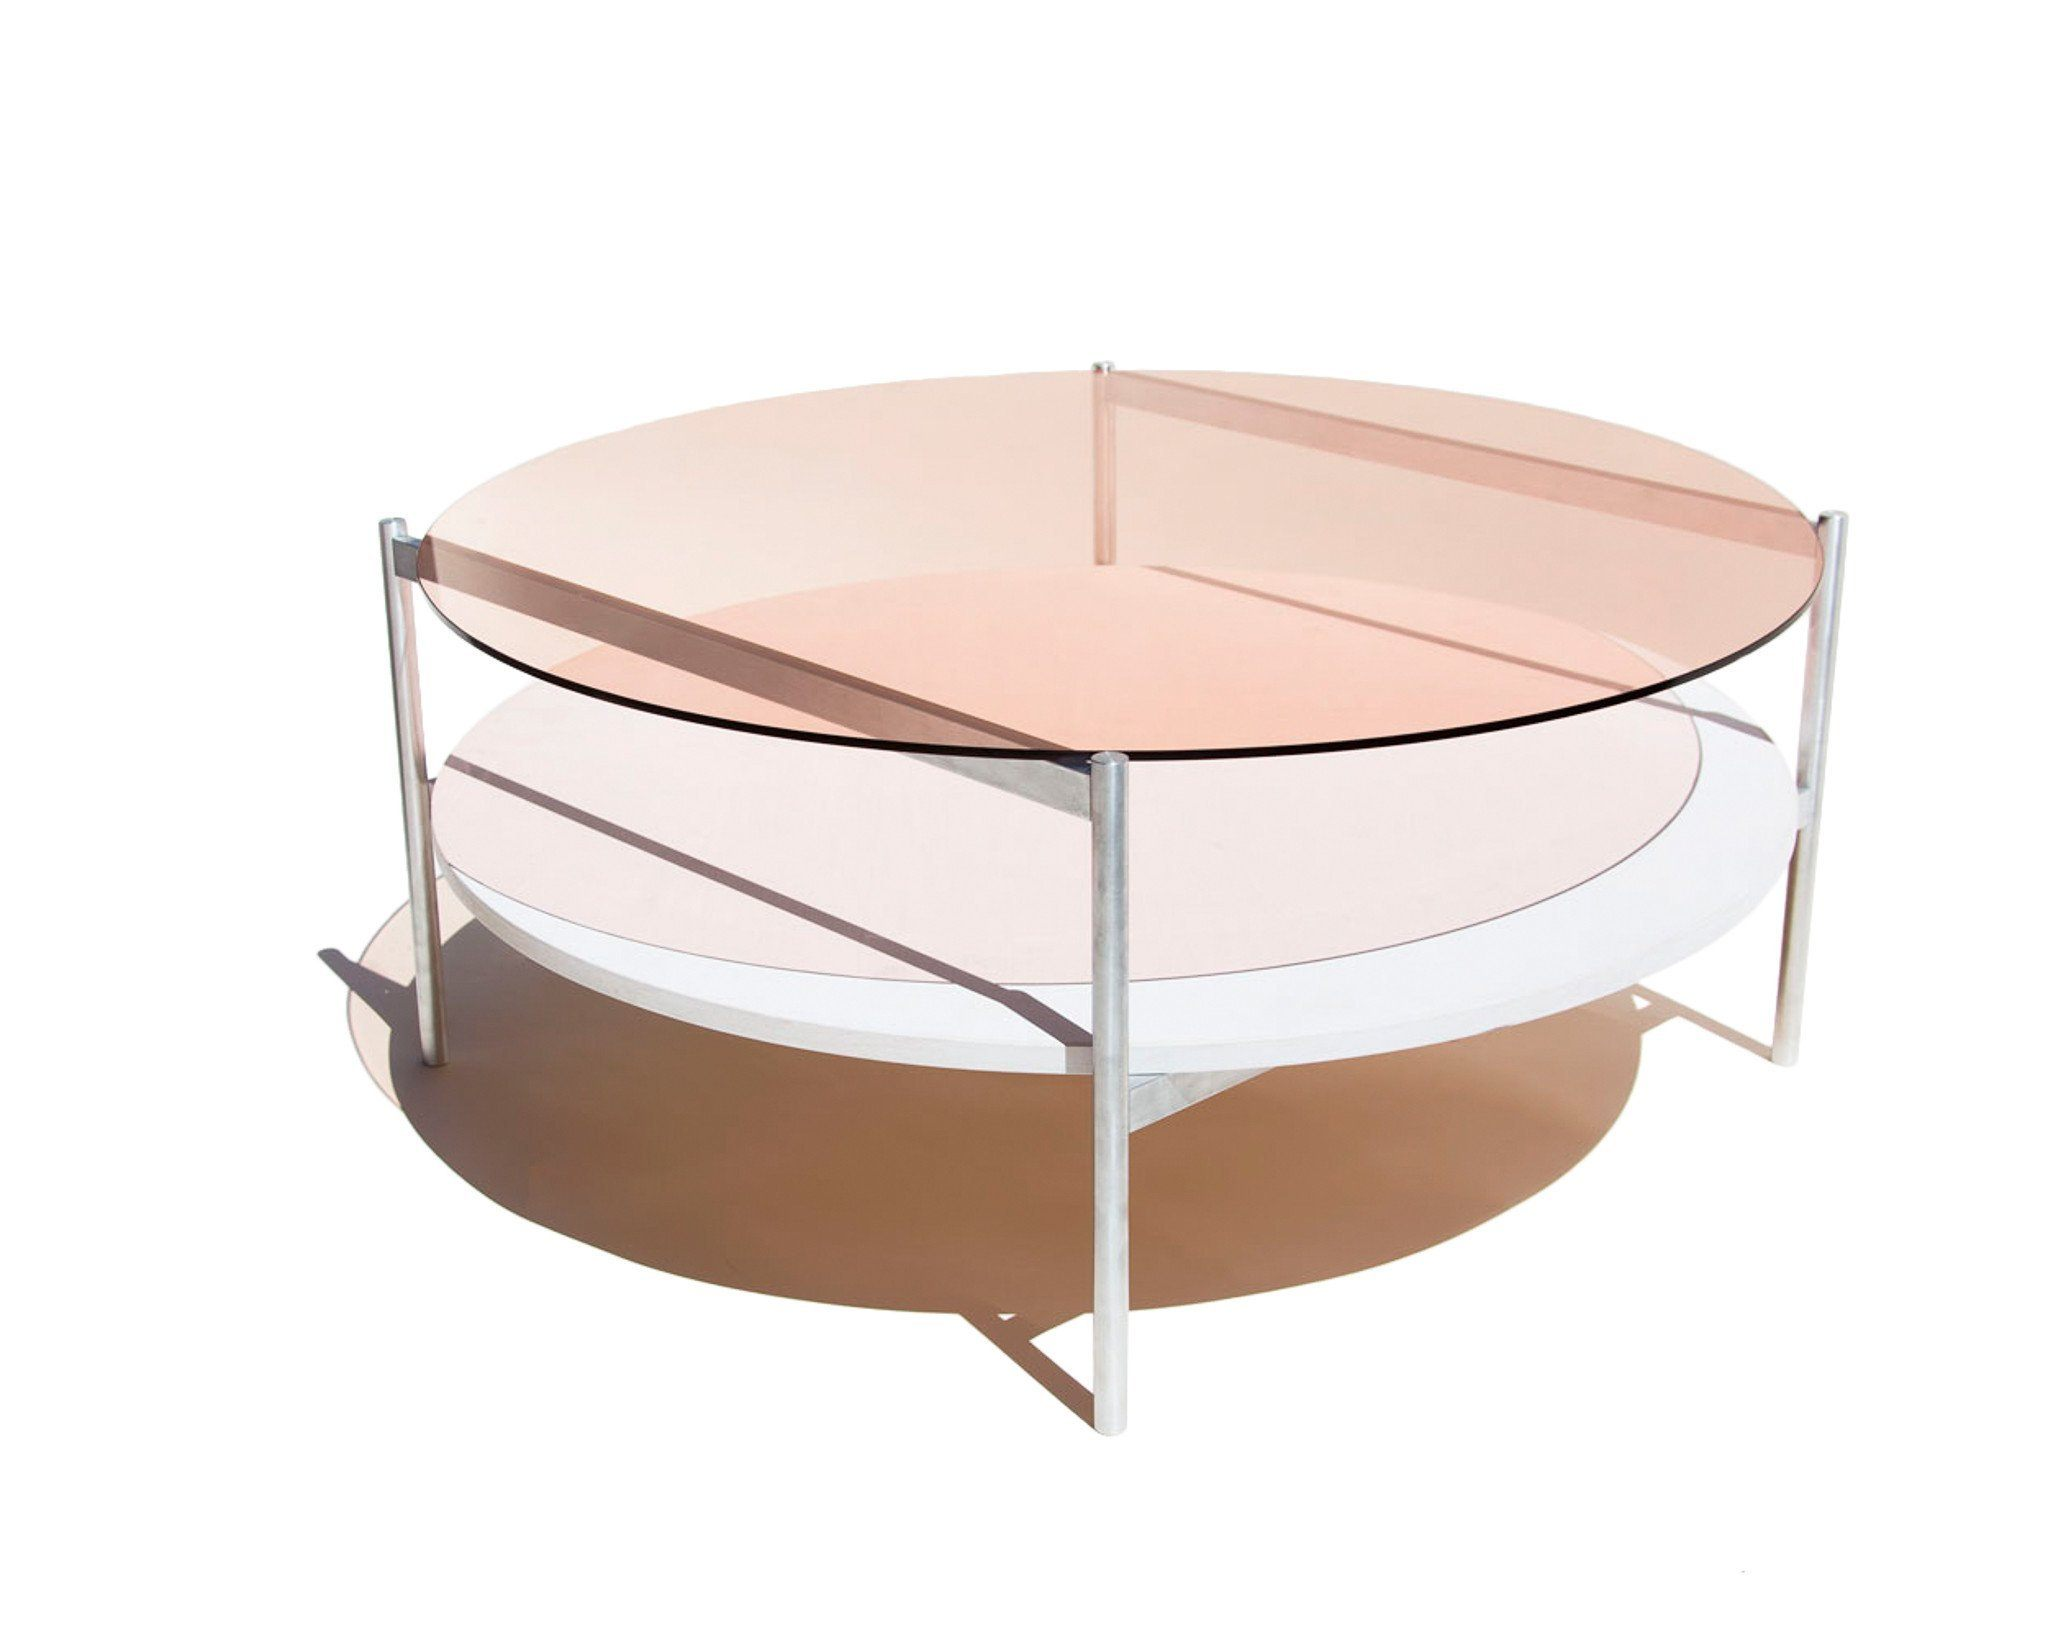 ... Tables U003e Coffee Table Round   Duotone Circular Coffee Table In Aluminum  ...